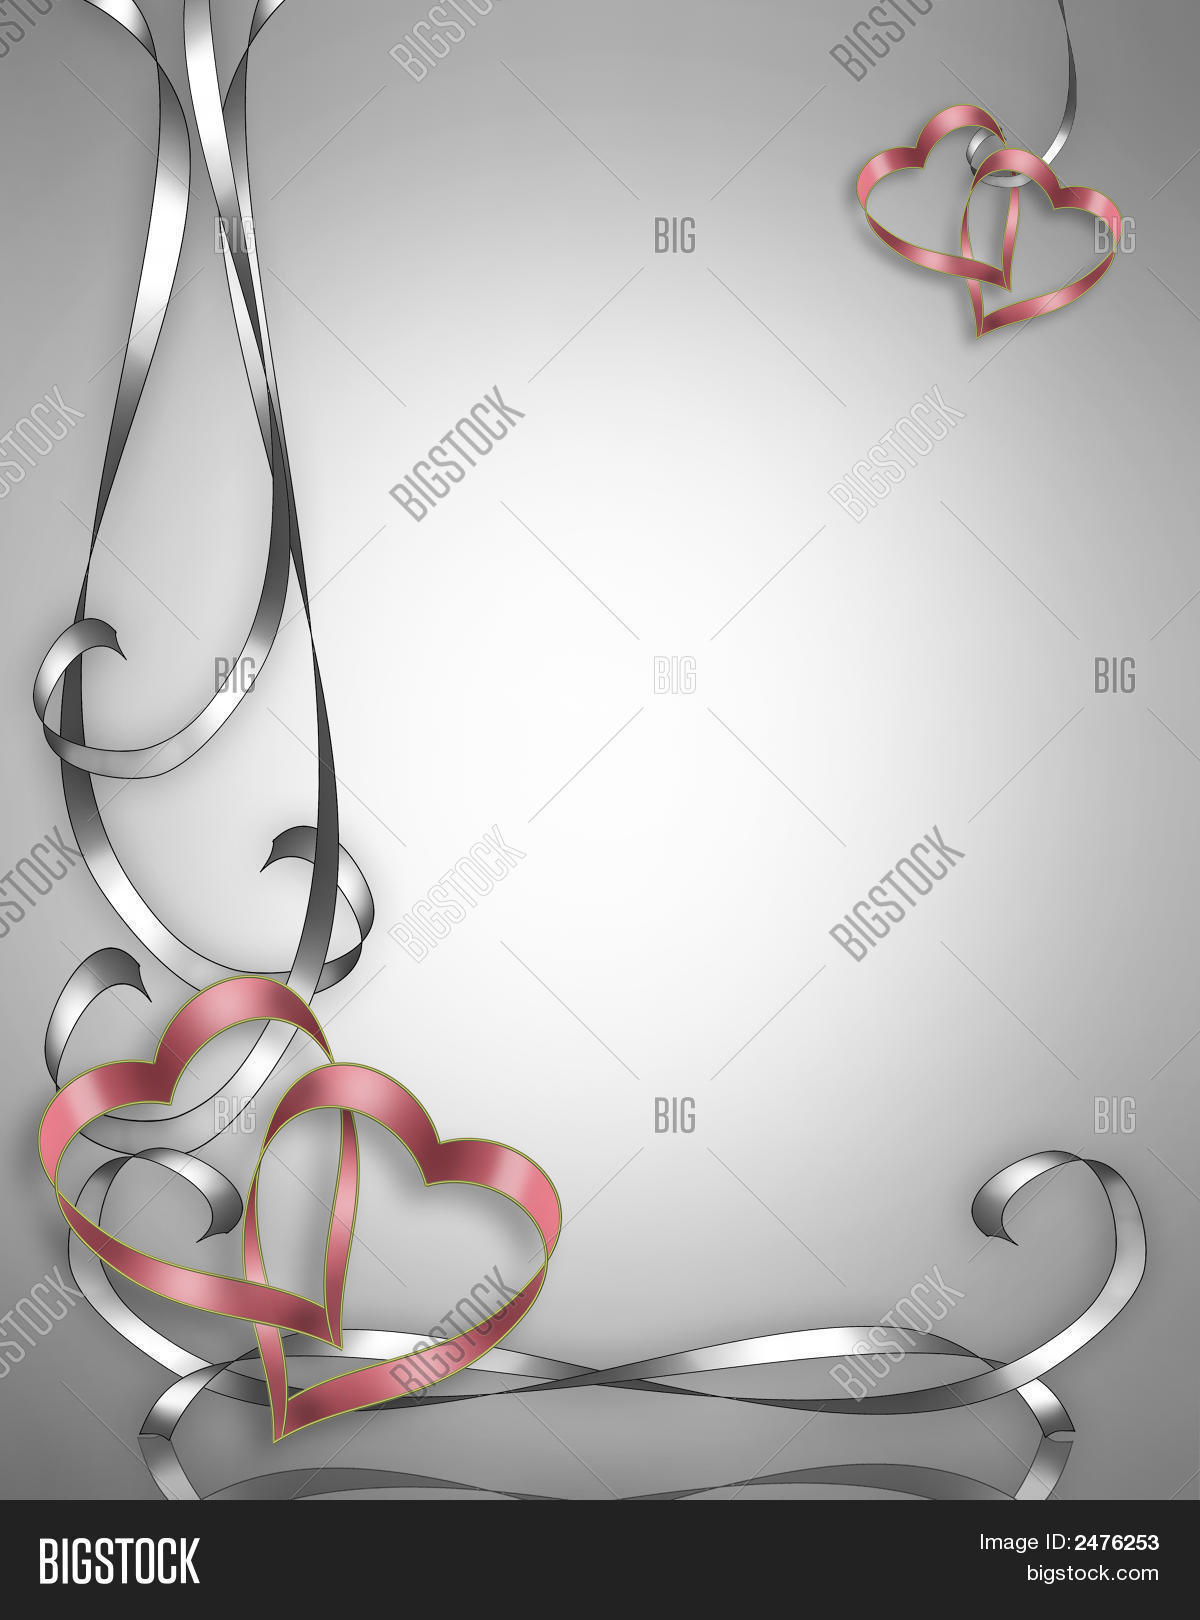 wedding invitation or valentine background - Wedding Invitation Background